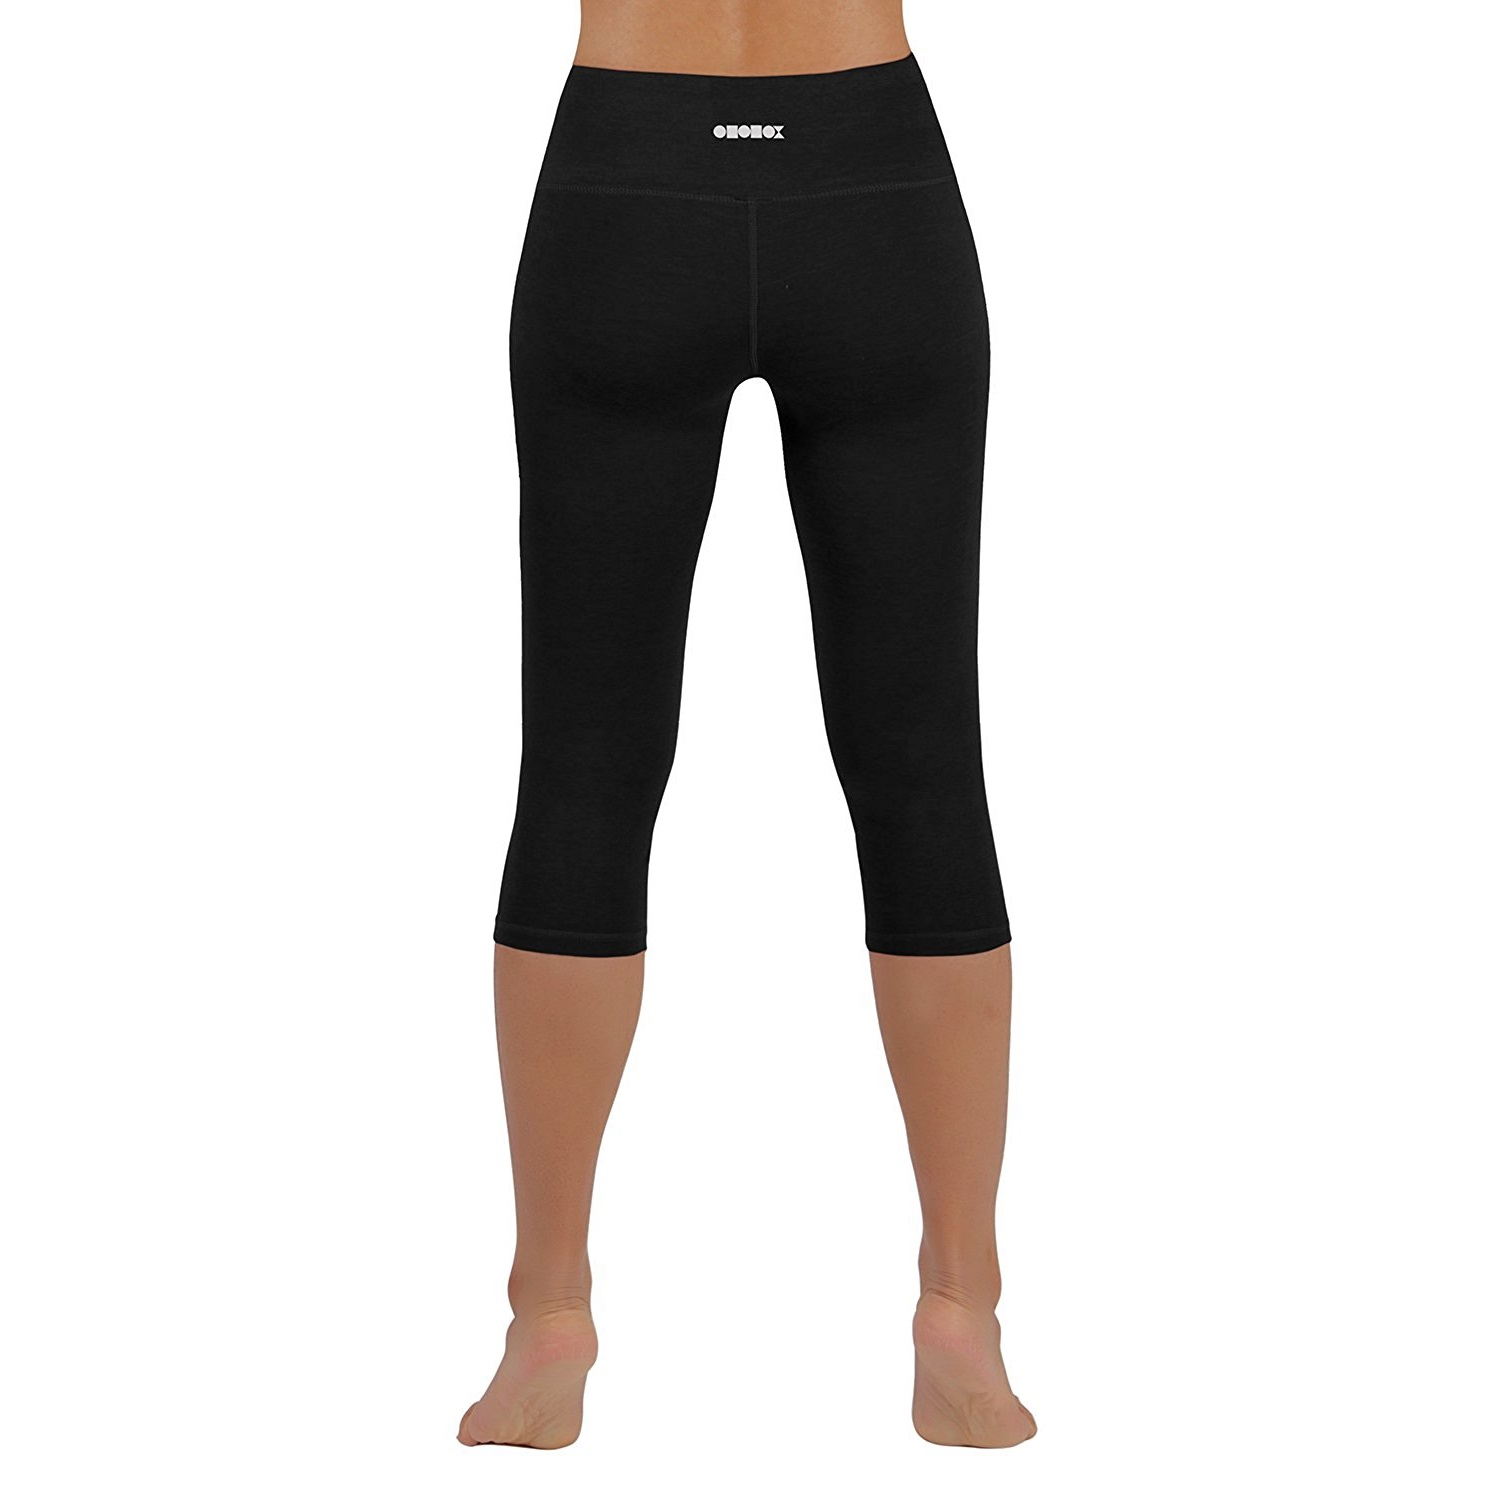 black ododos power flex womens 4-way stretch yoga capri pants c5bec8ff8a